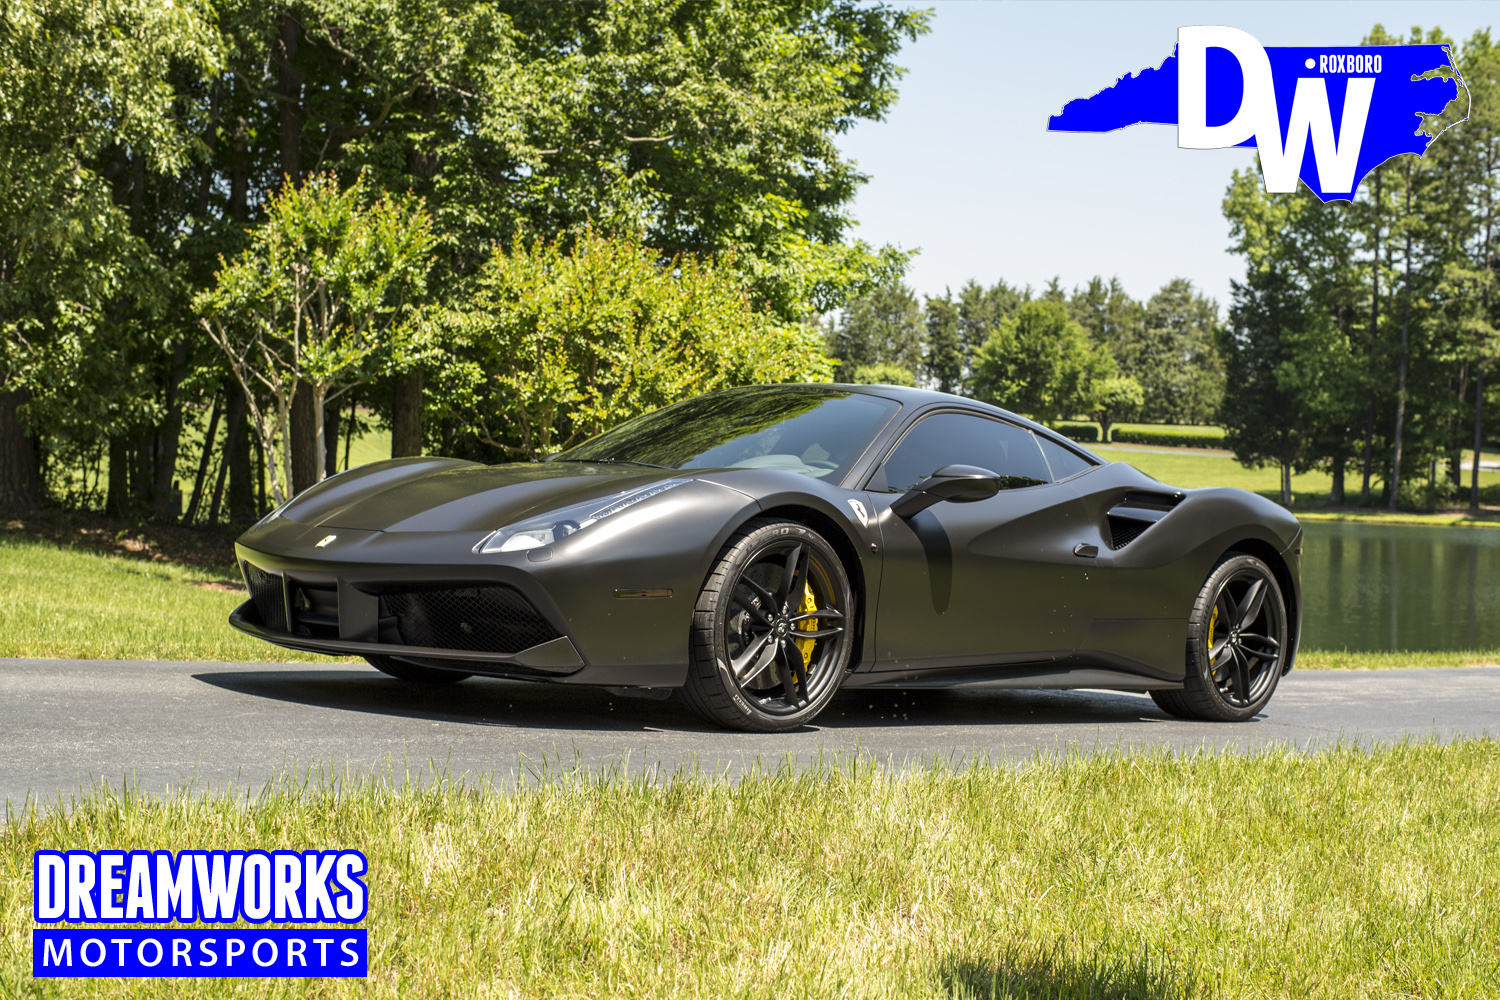 Ferrari_488_Satin_Black_Wrap_Murdered_Out_by_Dreamworks-Motorsports.jpg